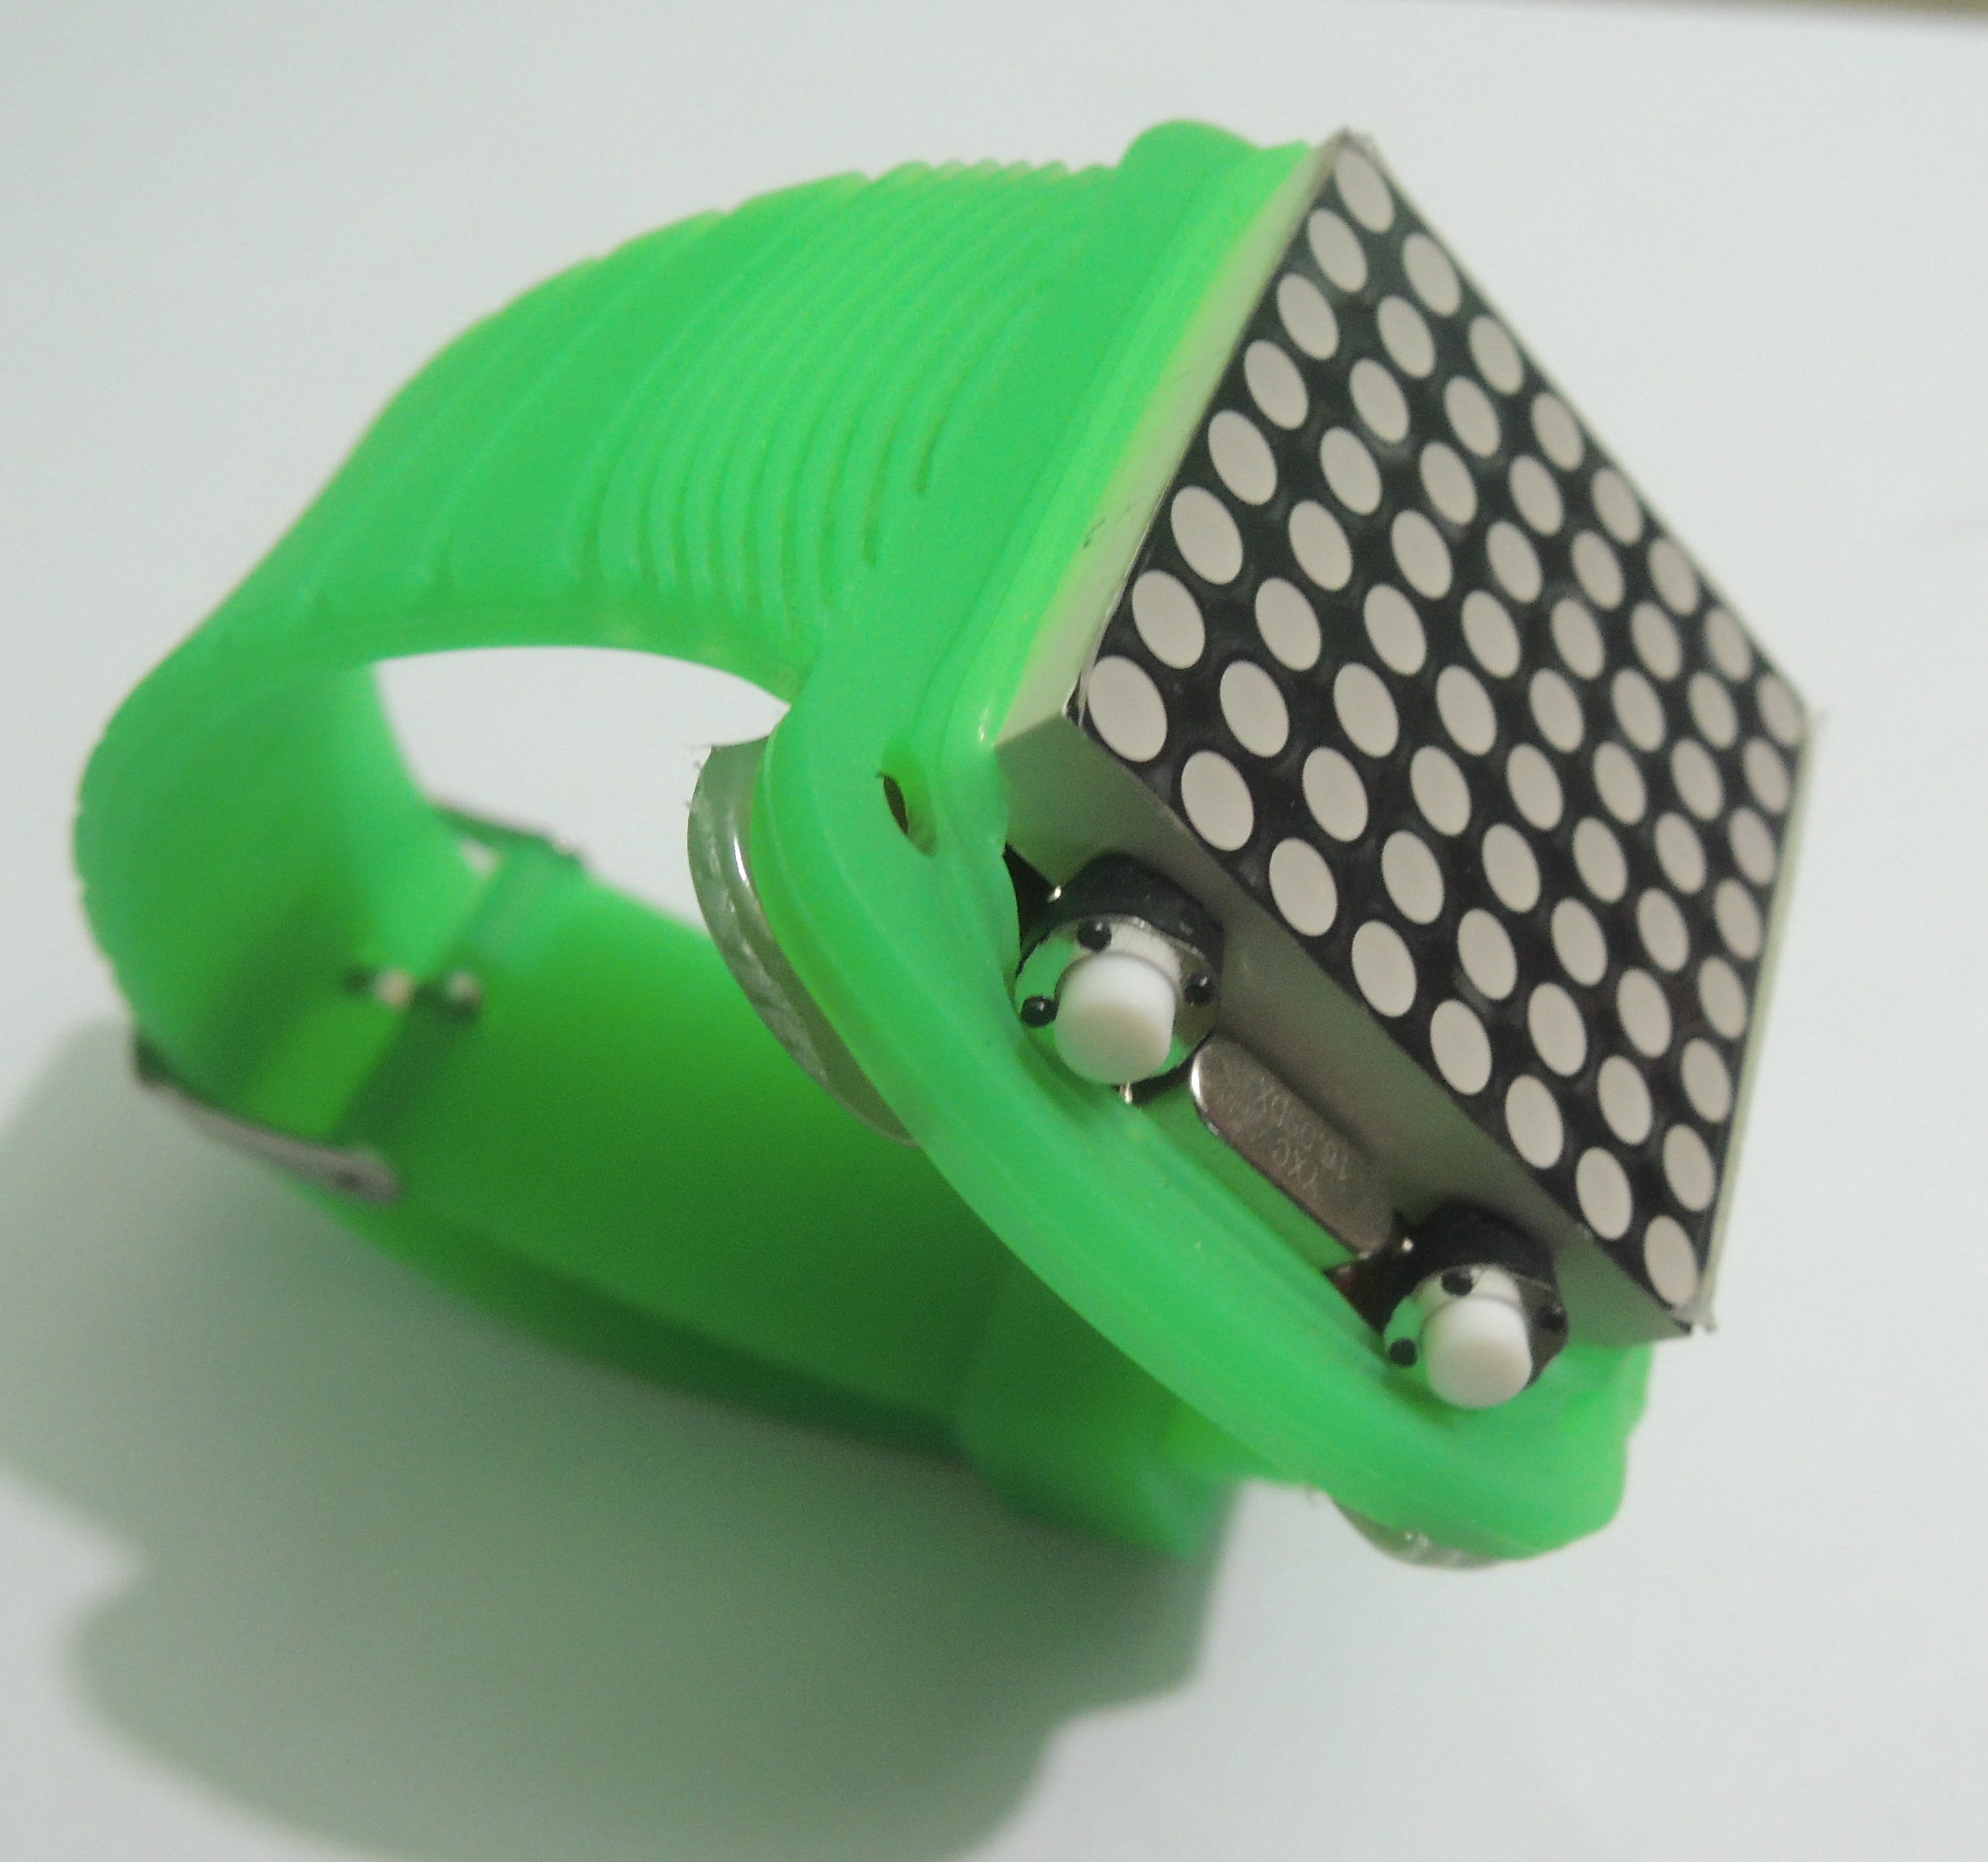 DIY Arduino Dot Matrix Wrist Watch